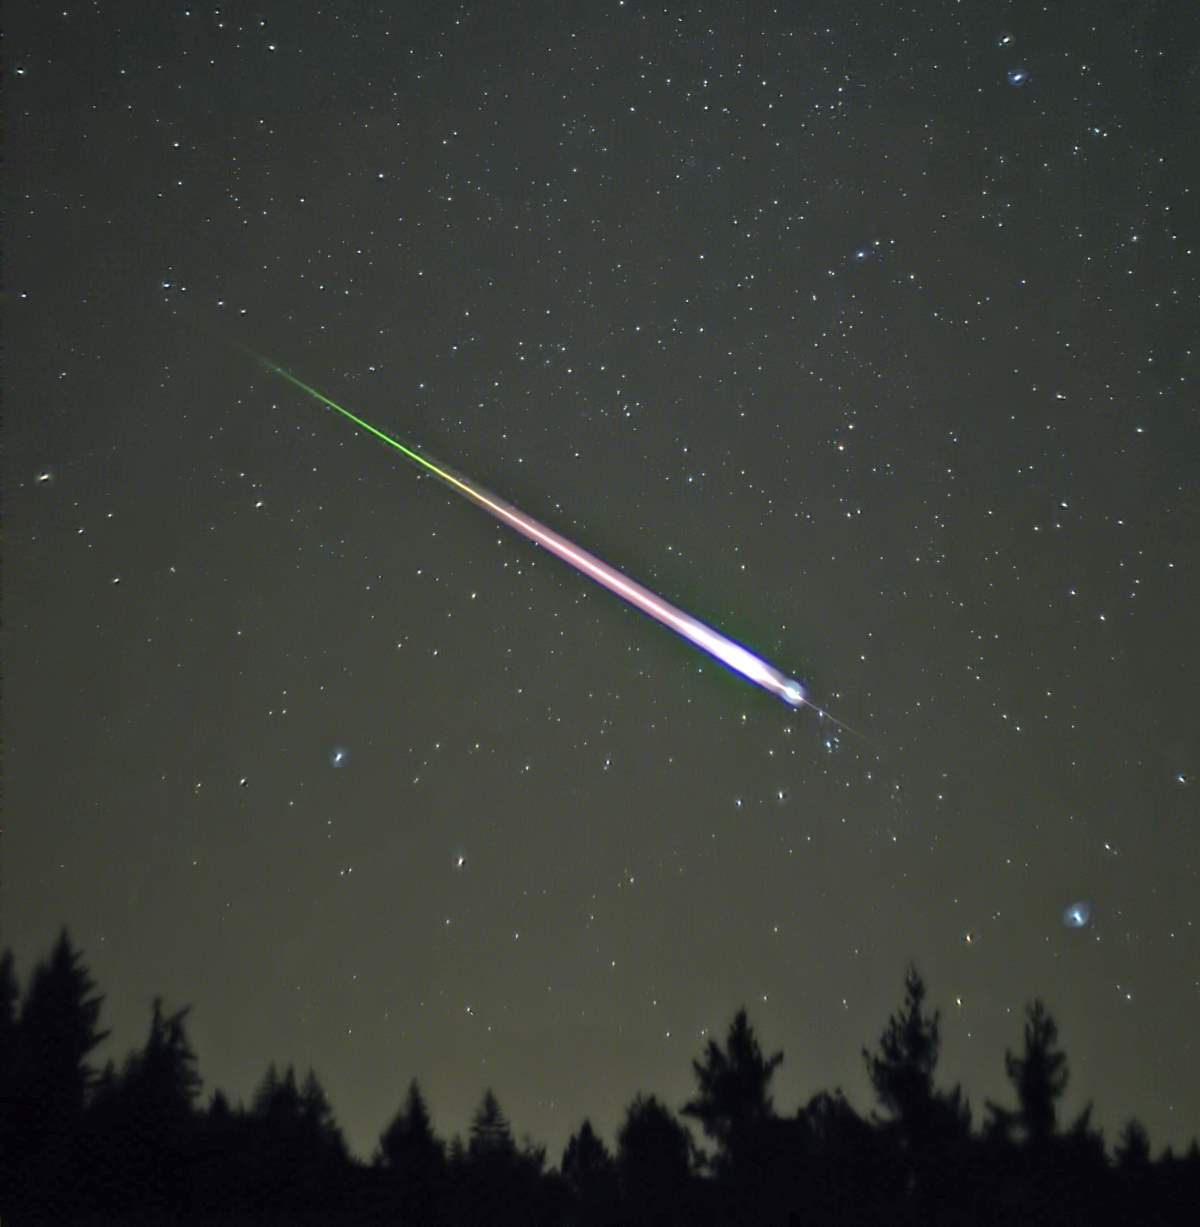 Earth & Solar System Facts: A Leonid meteor